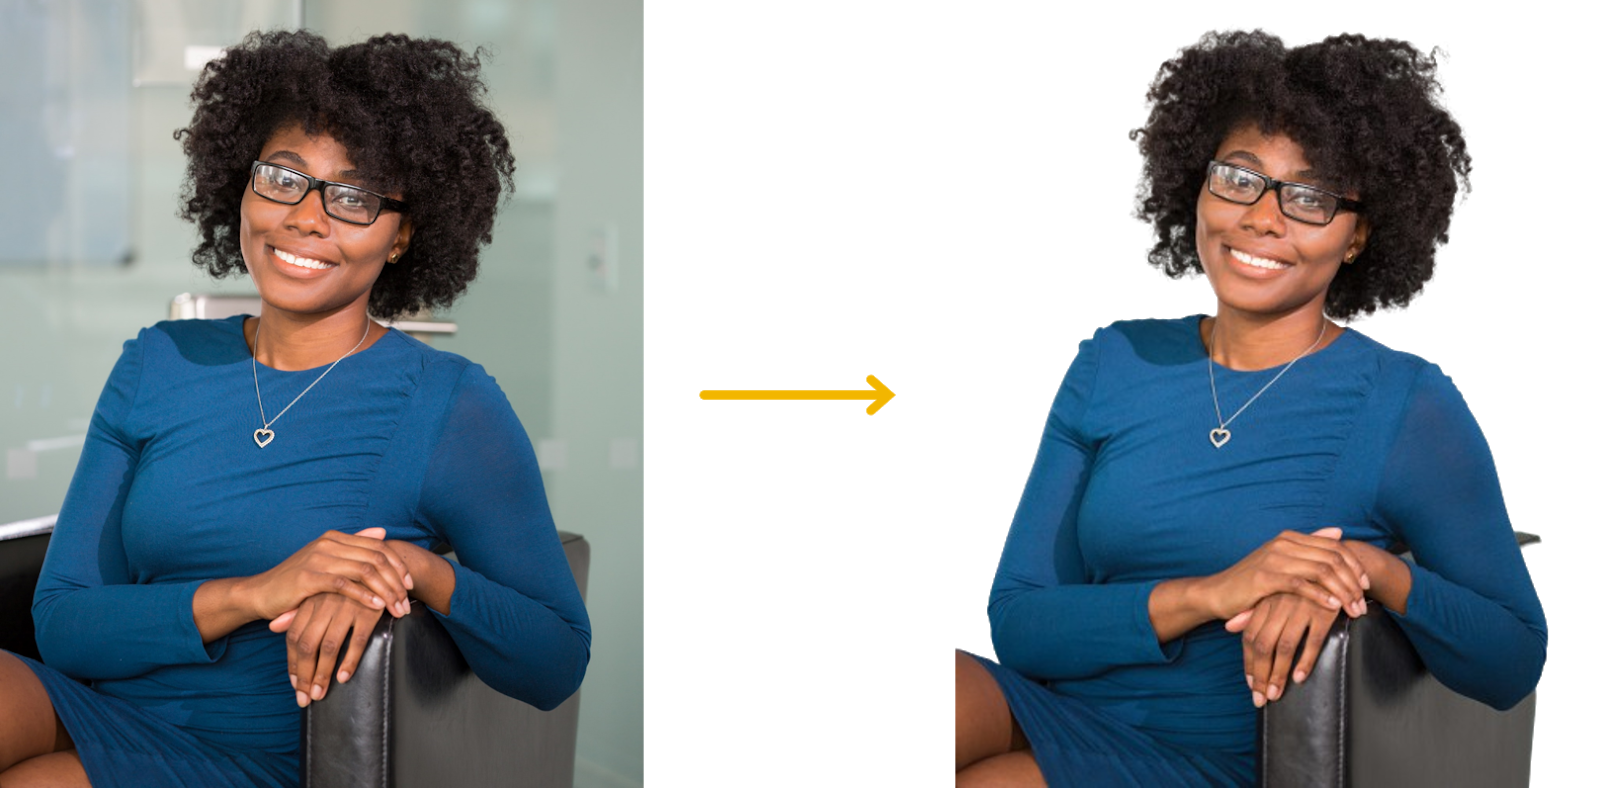 Before and after images of a photo of a woman with and without background